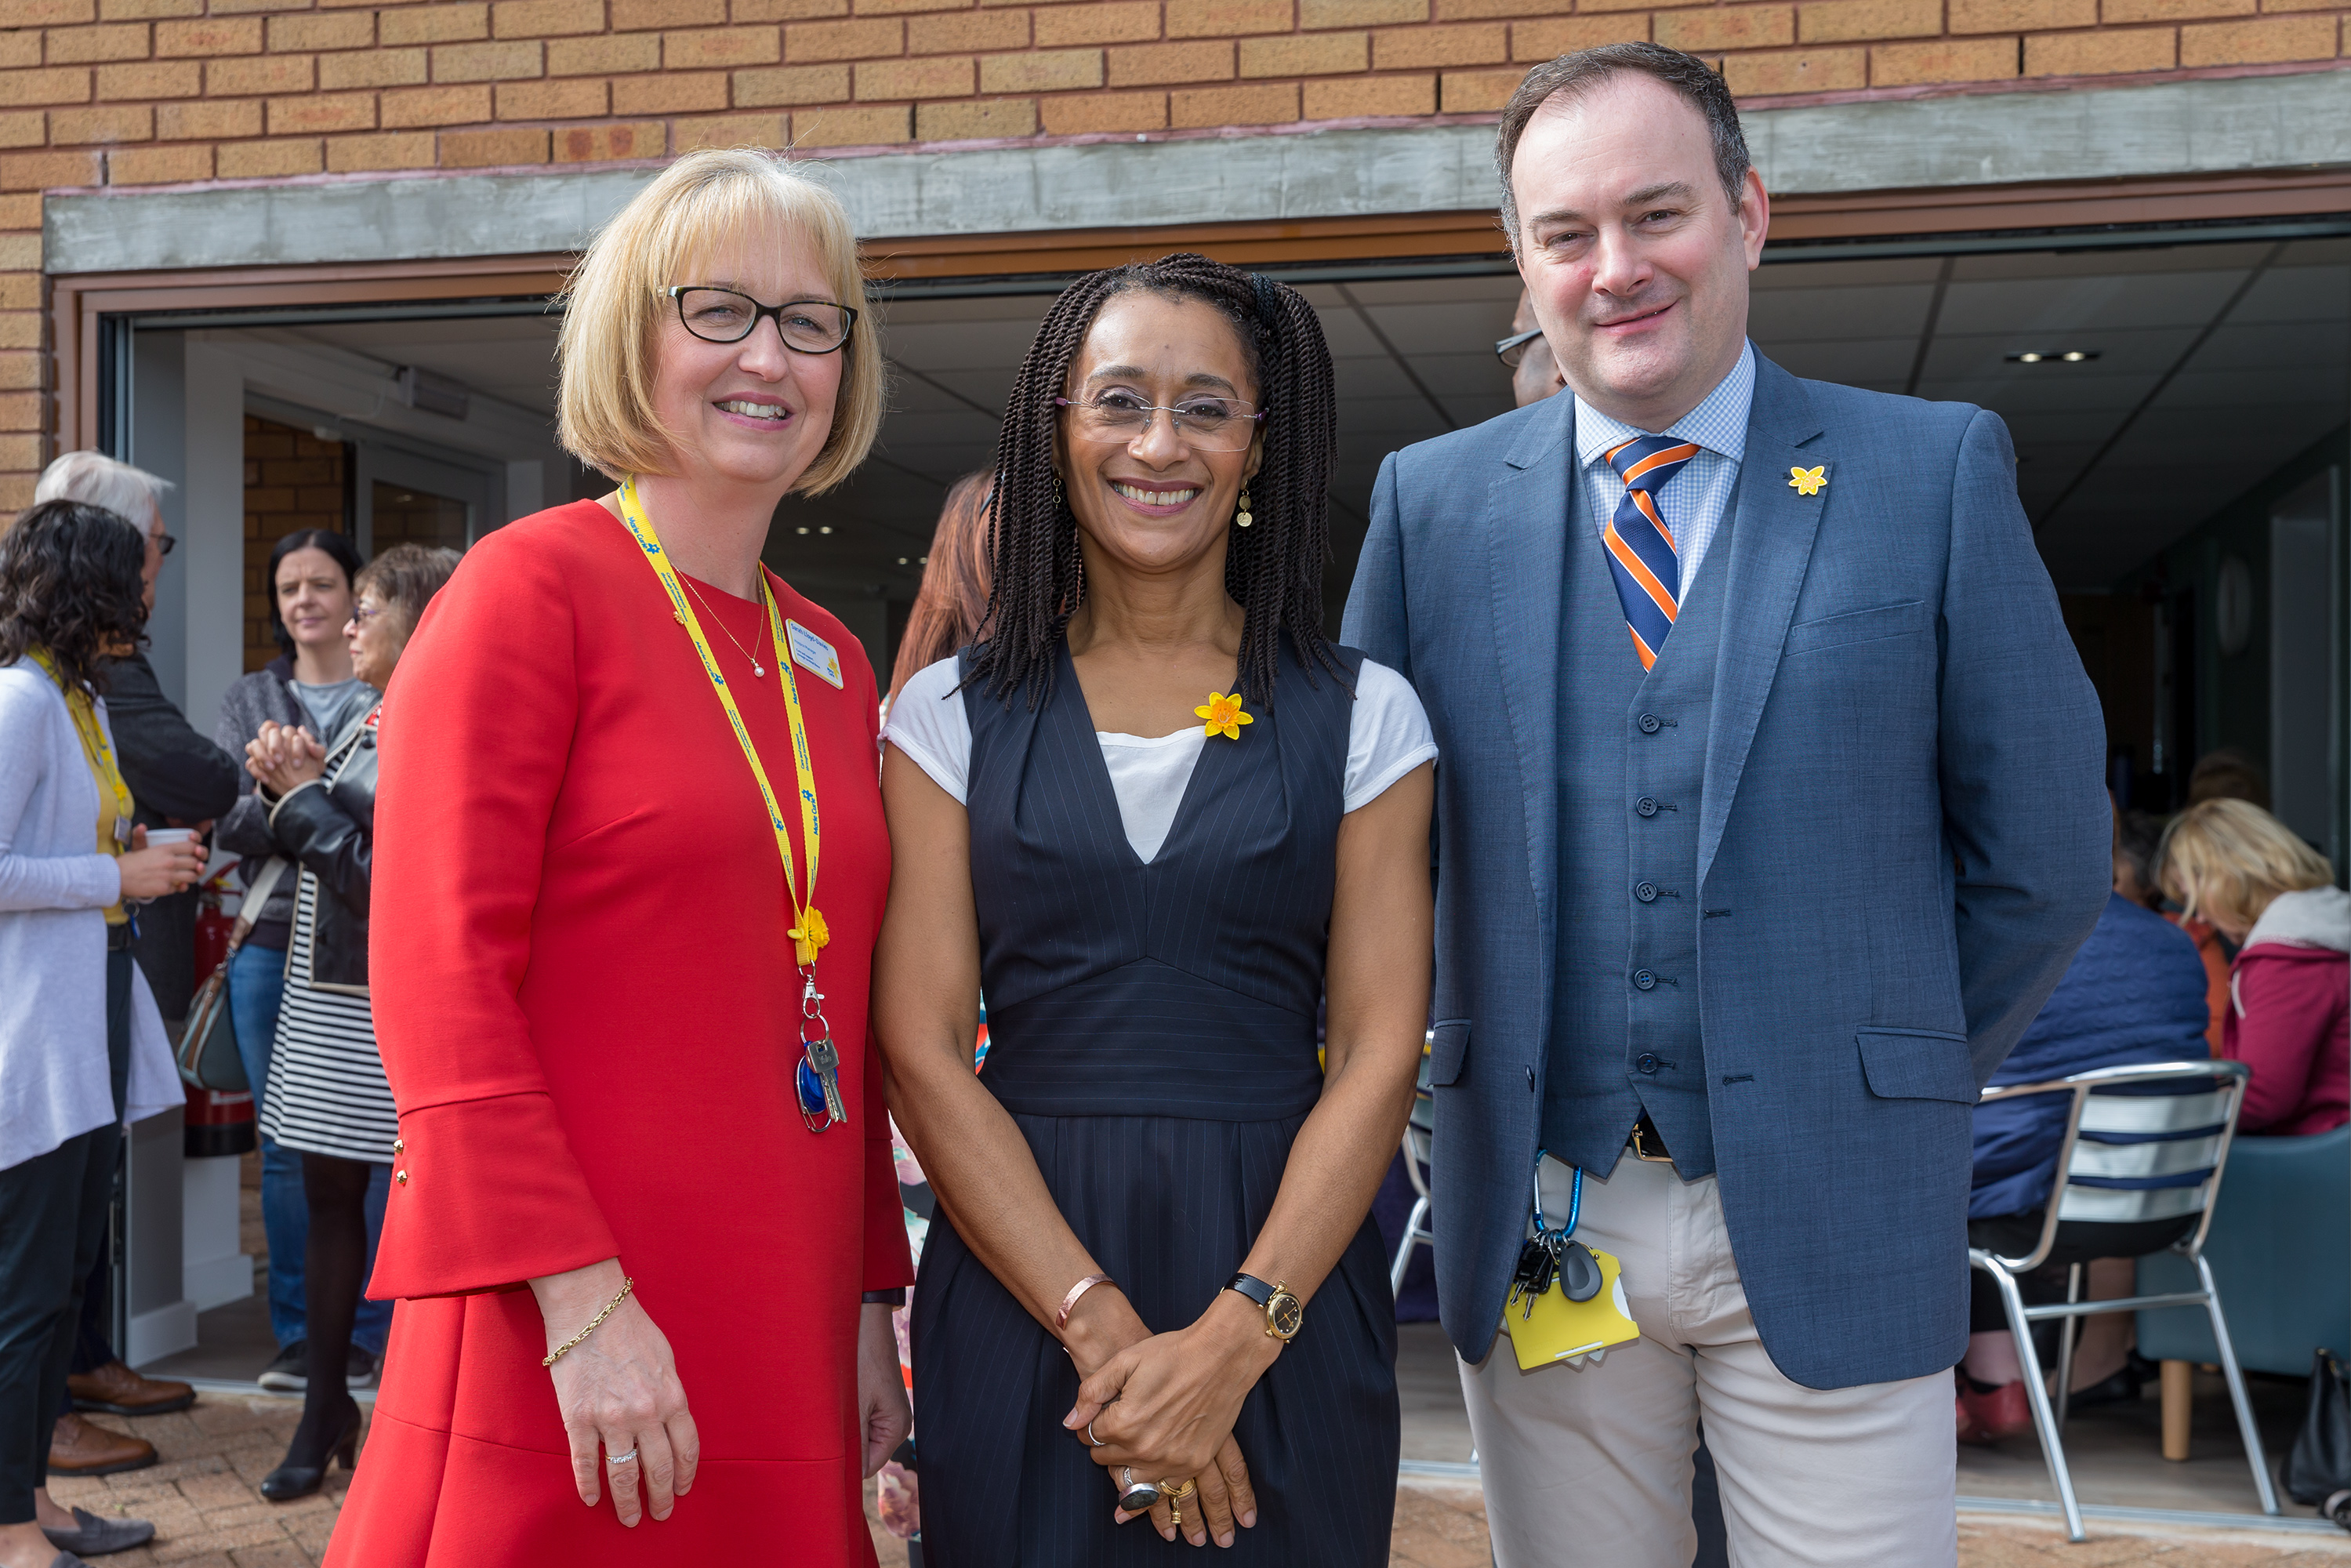 Hospice manager Sarah Lloyd-Davies with Keeping Faith actress Suzanne Packer and divisional general manager Andrew Wilson-Mouasher